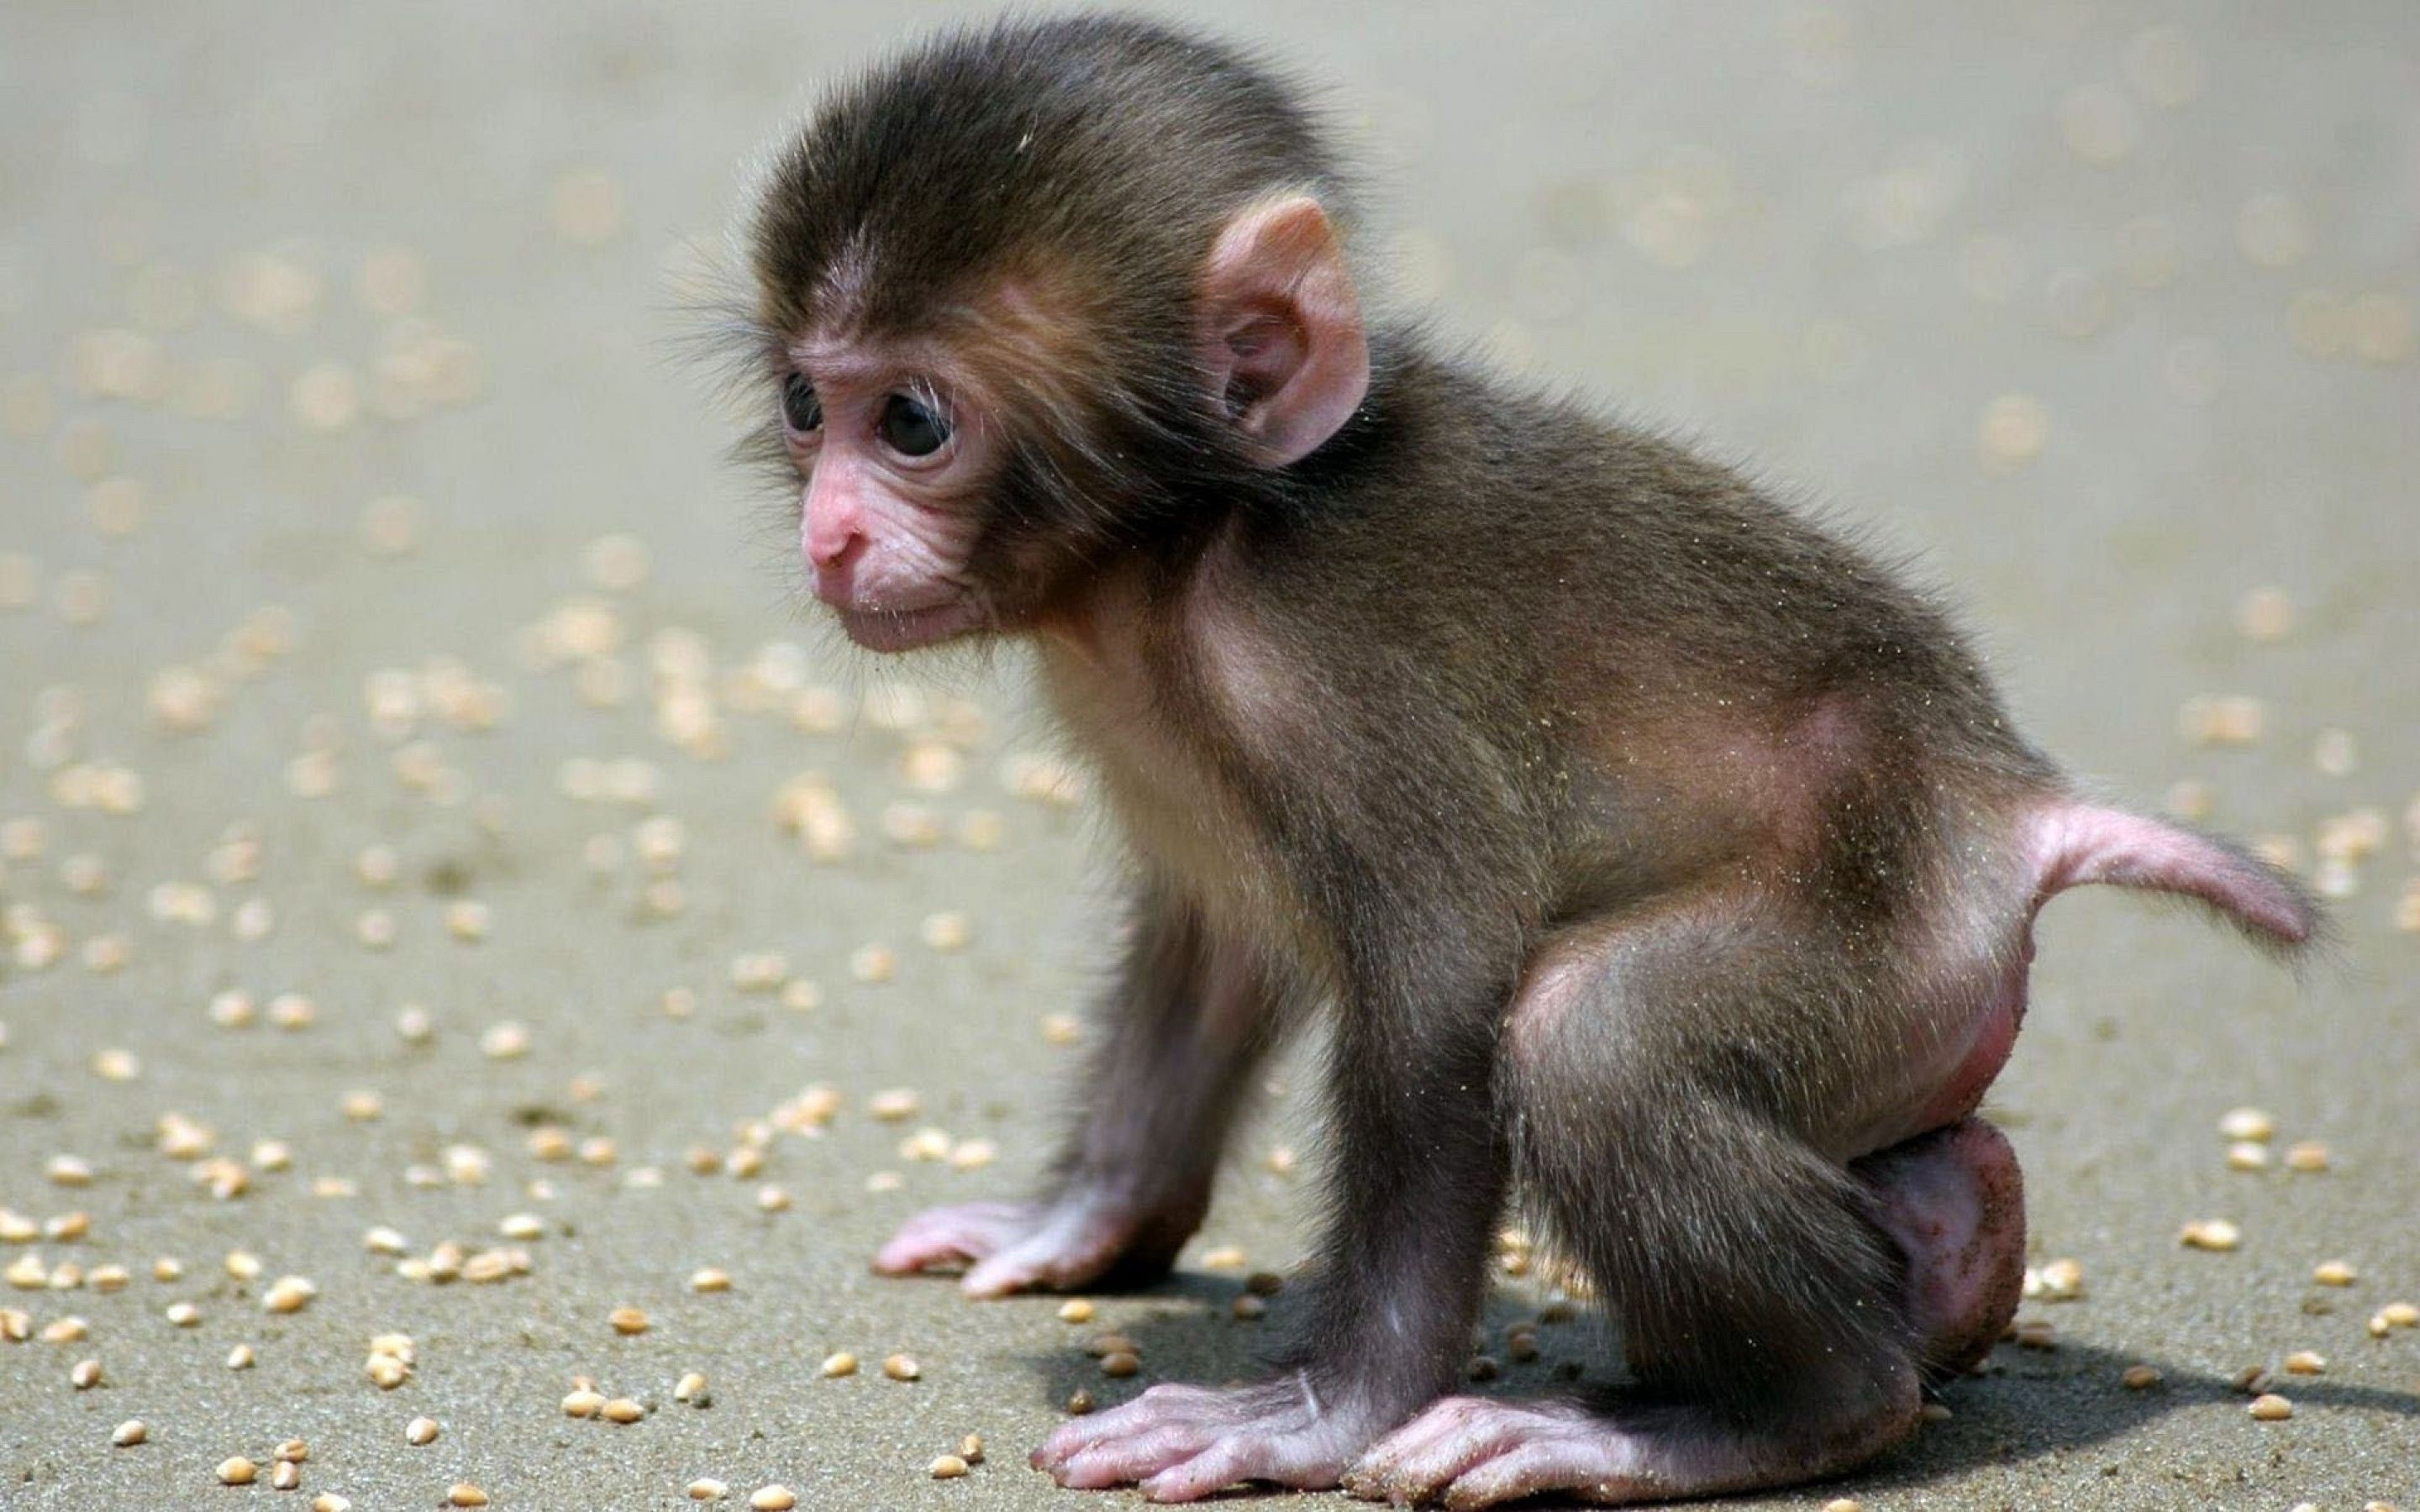 1280x960 Cute Monkey Backgrounds Group 53